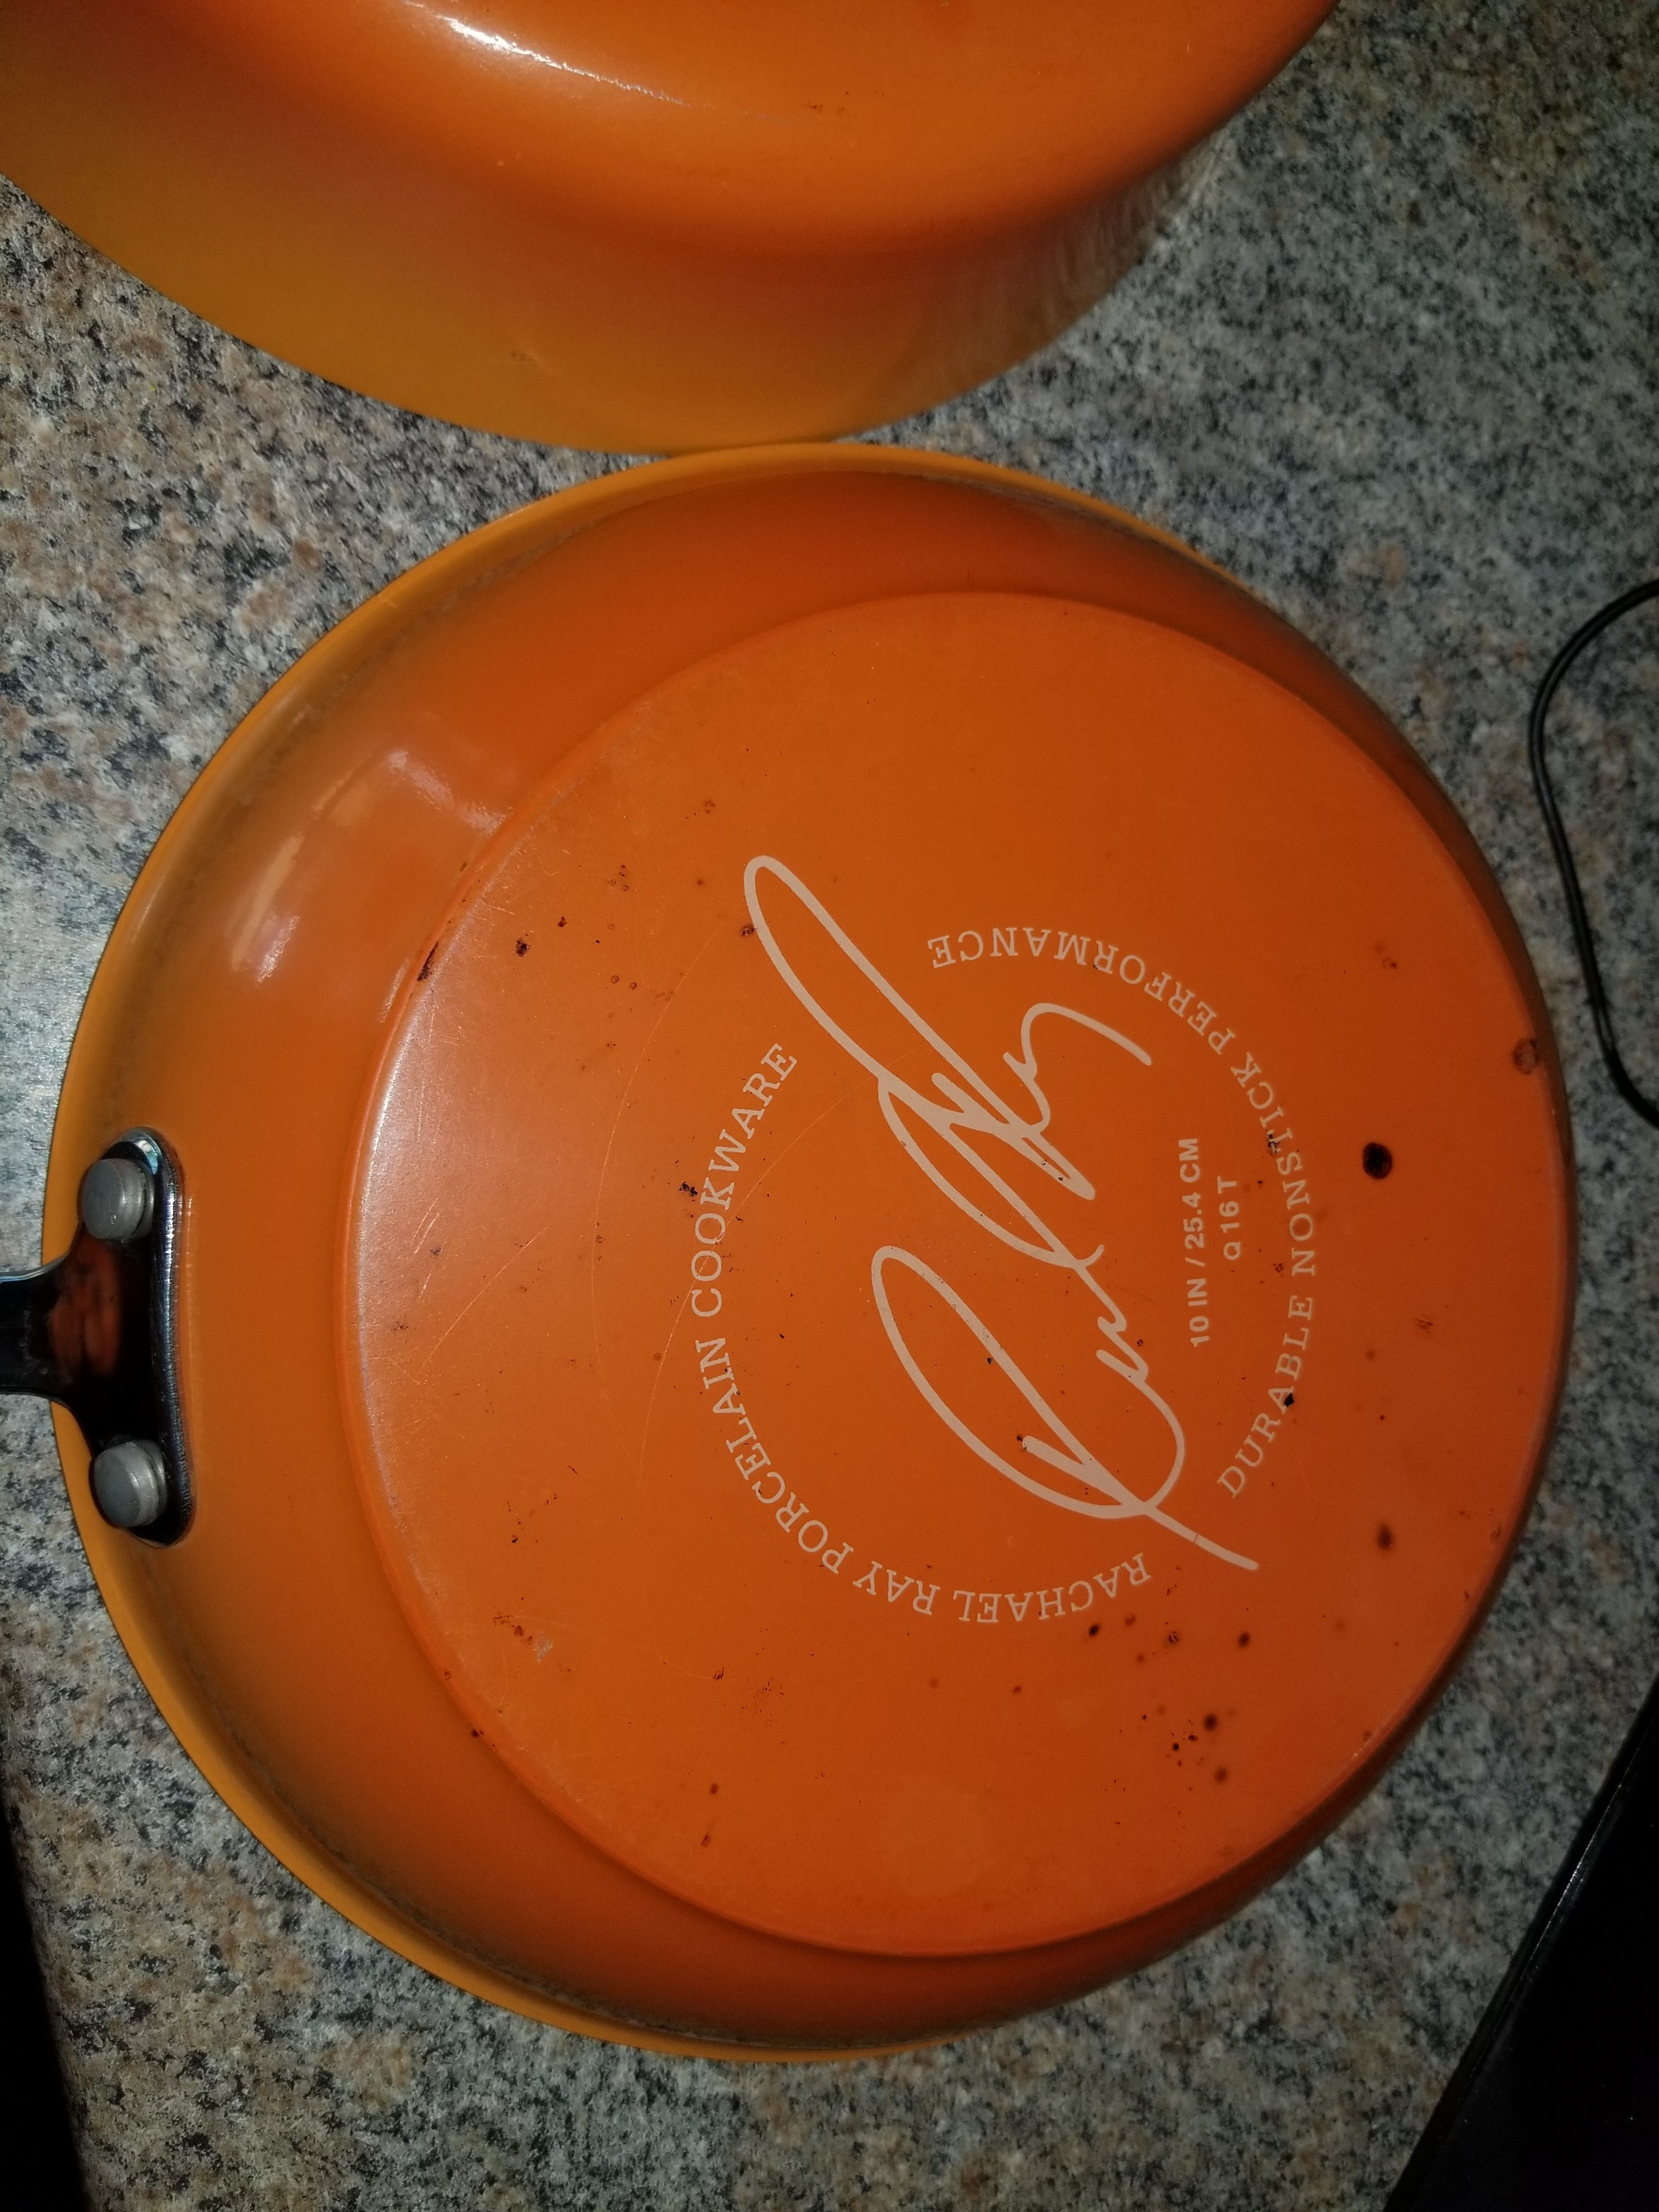 Top 187 Reviews and Complaints about Rachael Ray Cookware